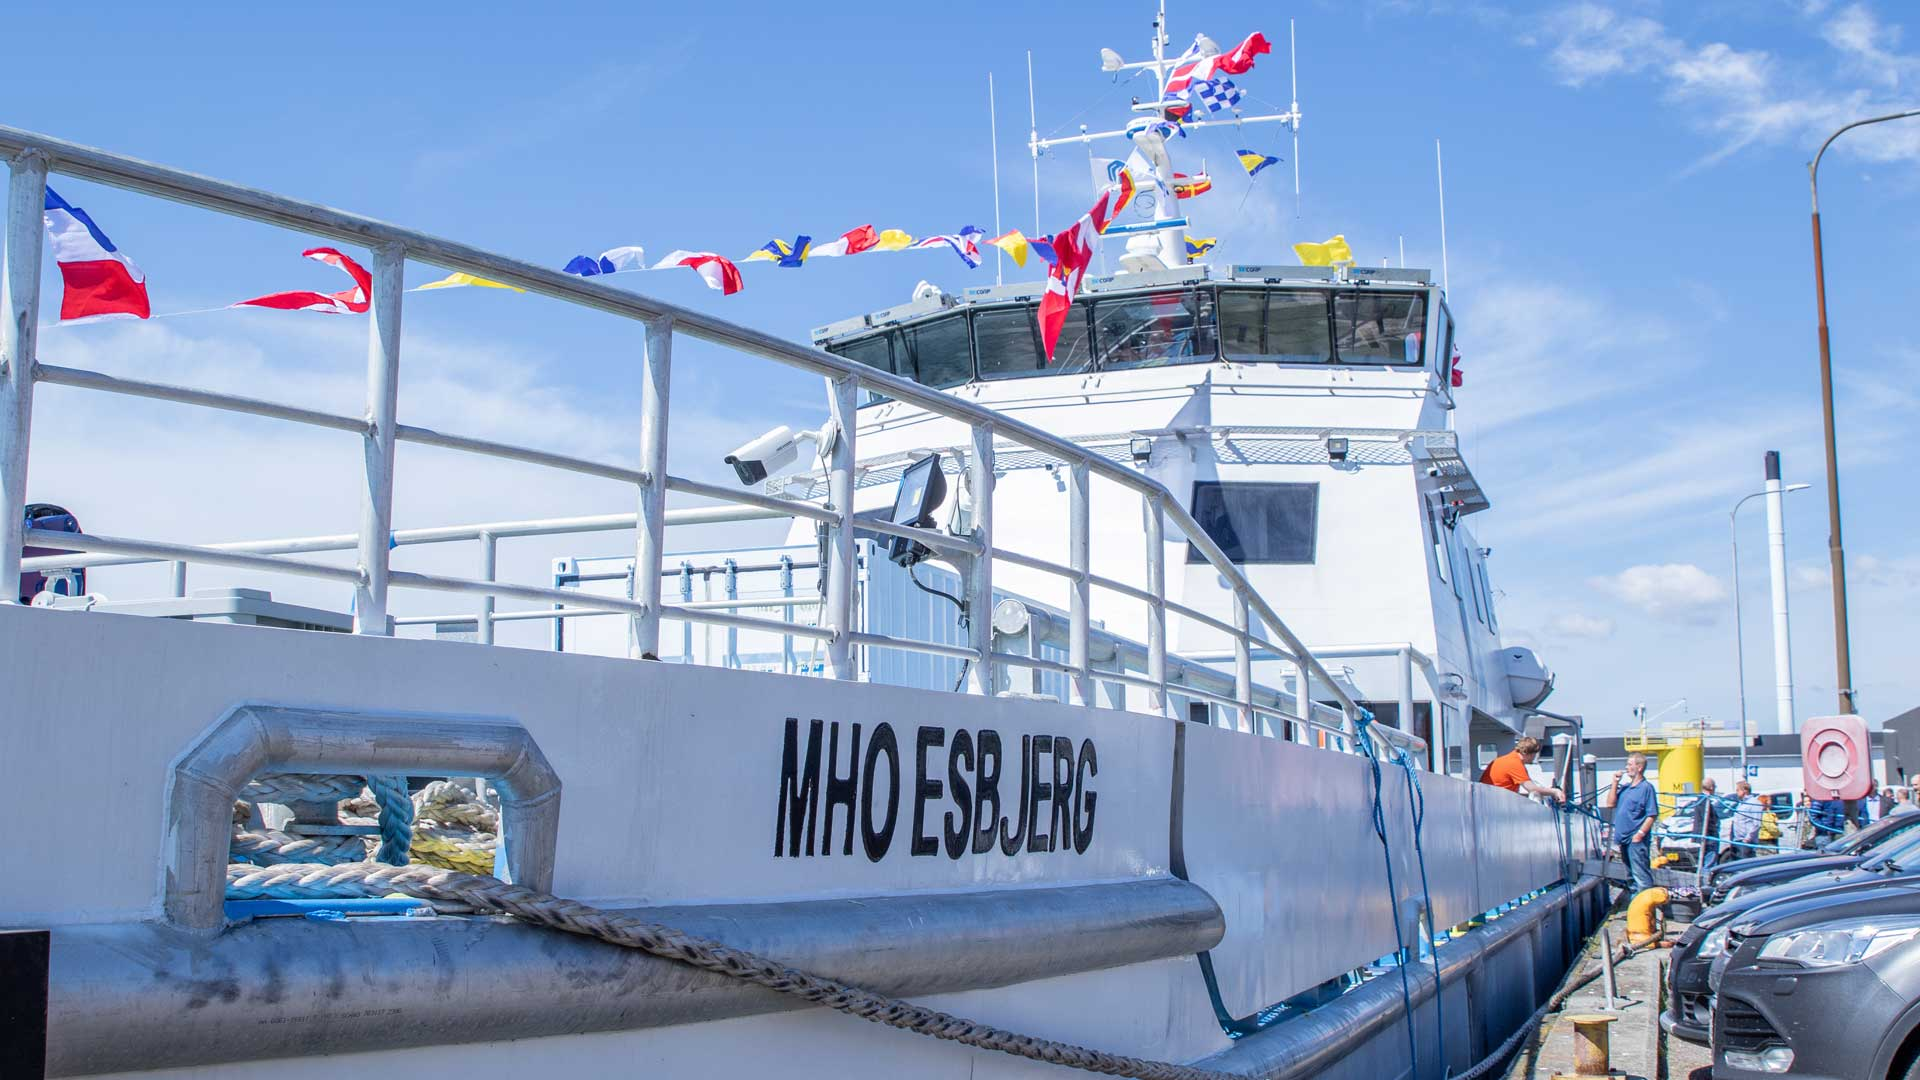 MHO Esbjerg ship from the dock - with nation flags blowing in the wind